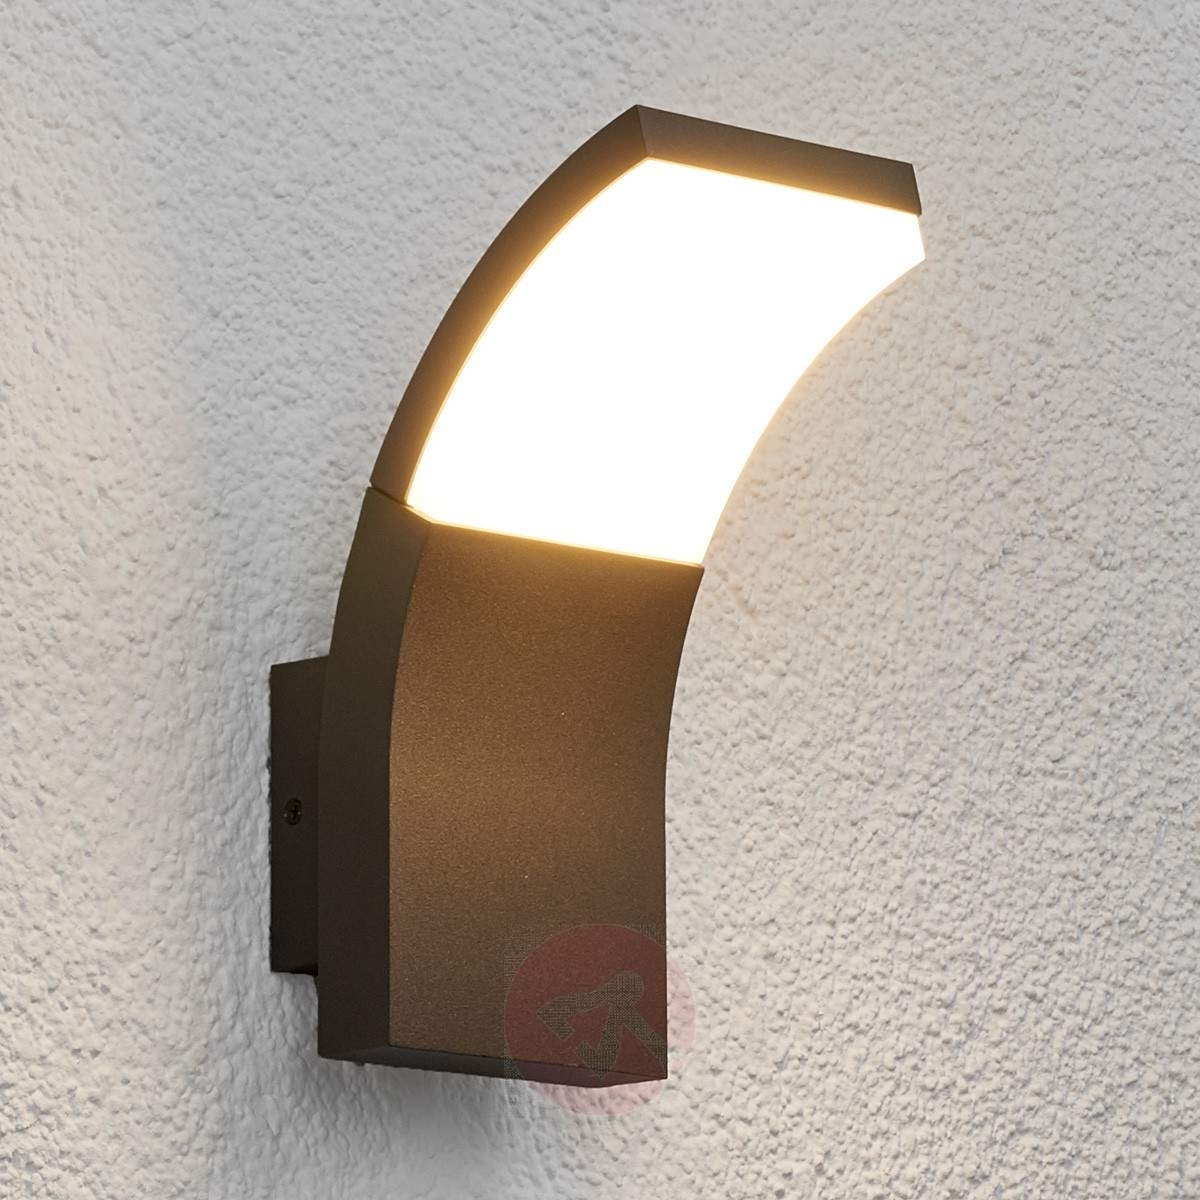 Popular Led Outdoor Wall Light Timm Lights Co Uk Brilliant Led In 4 Within Ip65 Outdoor Wall Lights (View 20 of 20)